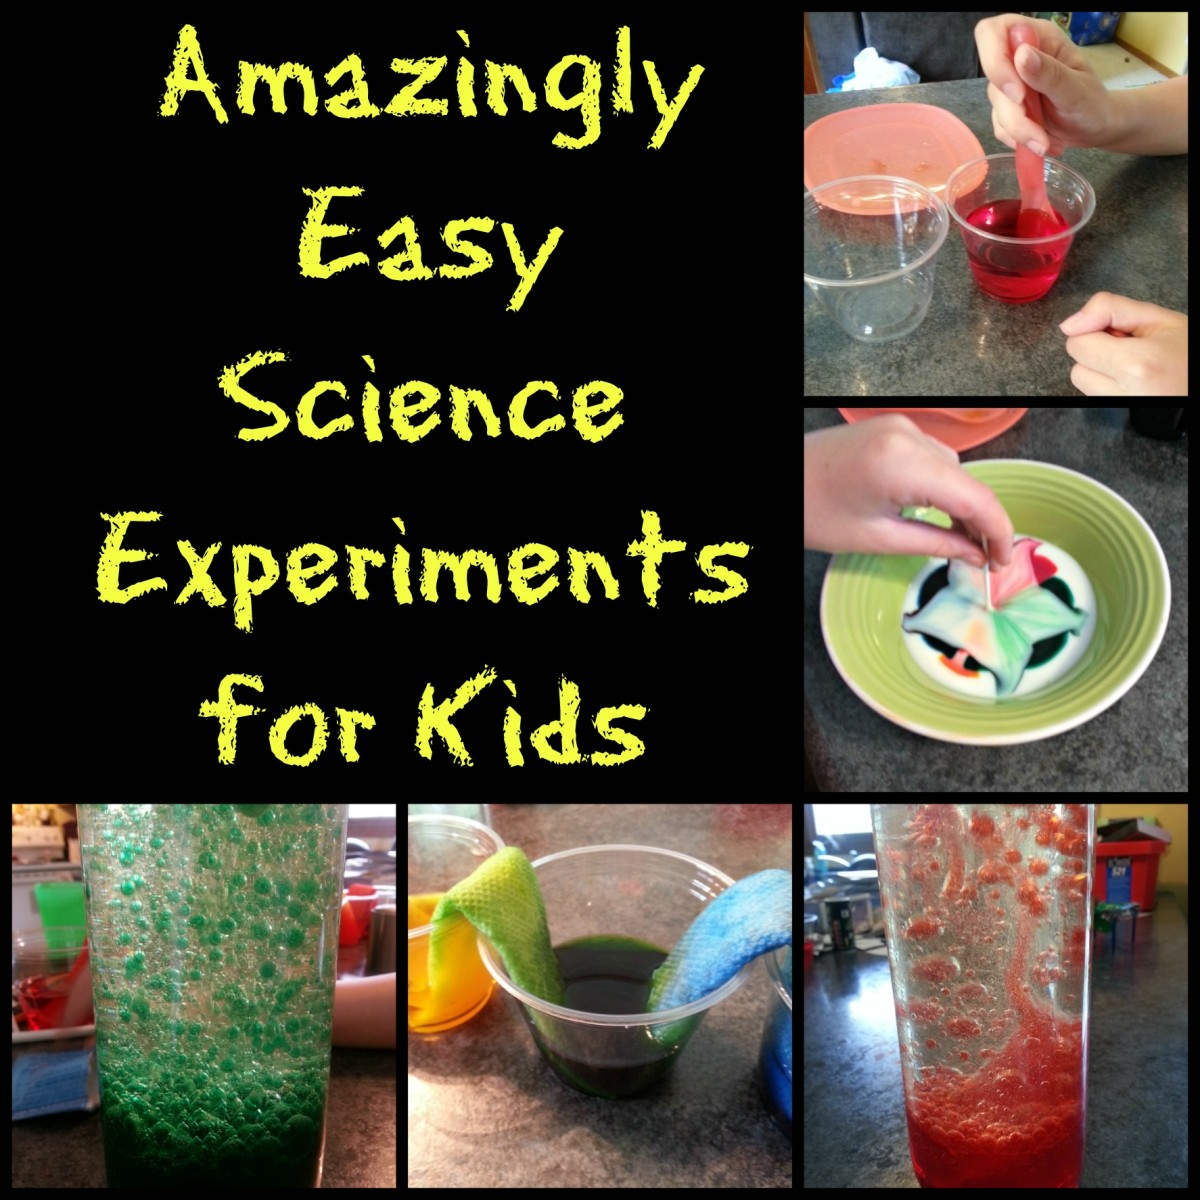 Amazingly Easy Science Experiments For Kids